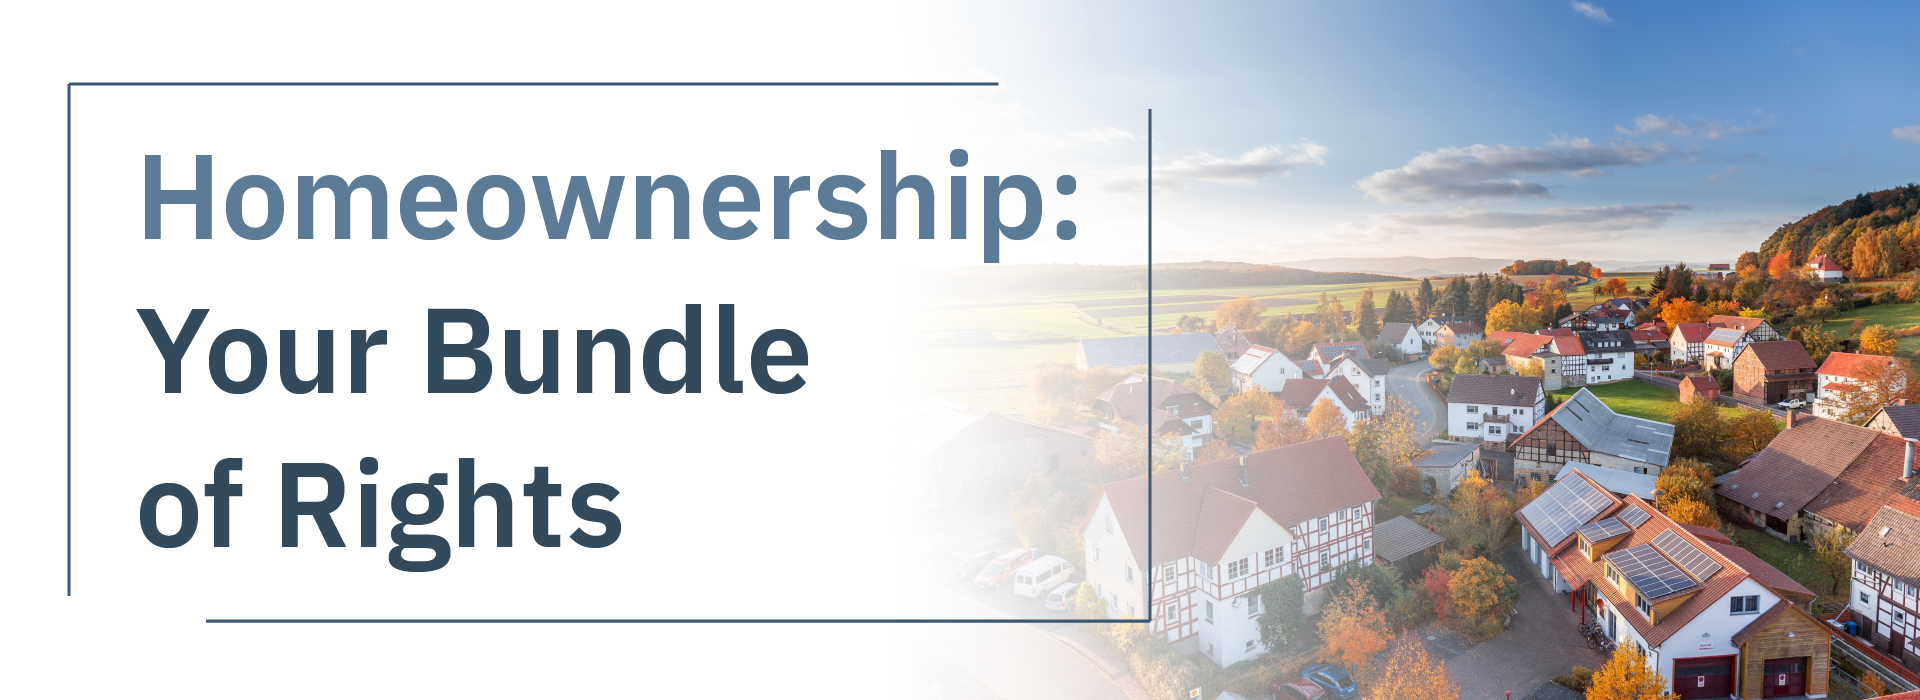 Homeownership: Your Bundle of Rights